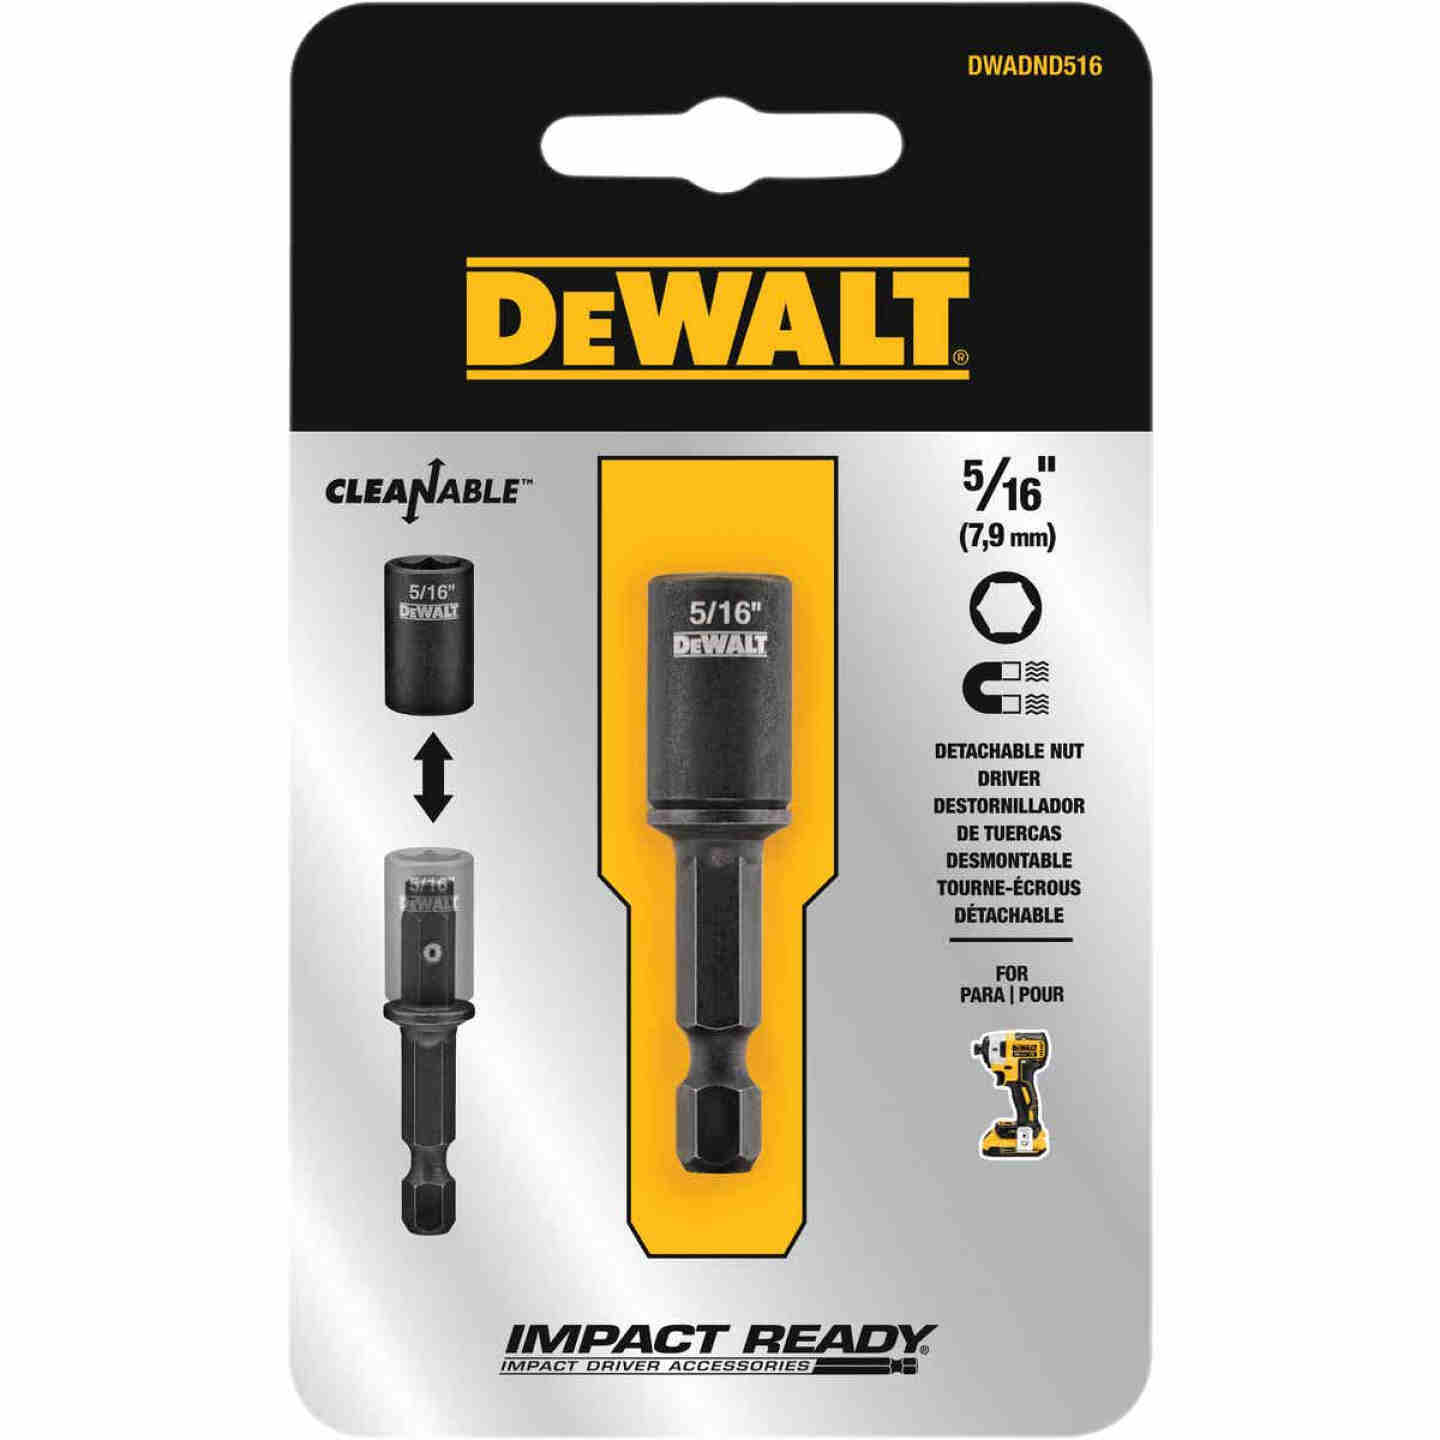 DeWalt Impact Ready 5/16 In. x 2 In. Cleanable Magnetic Nutdriver Image 1